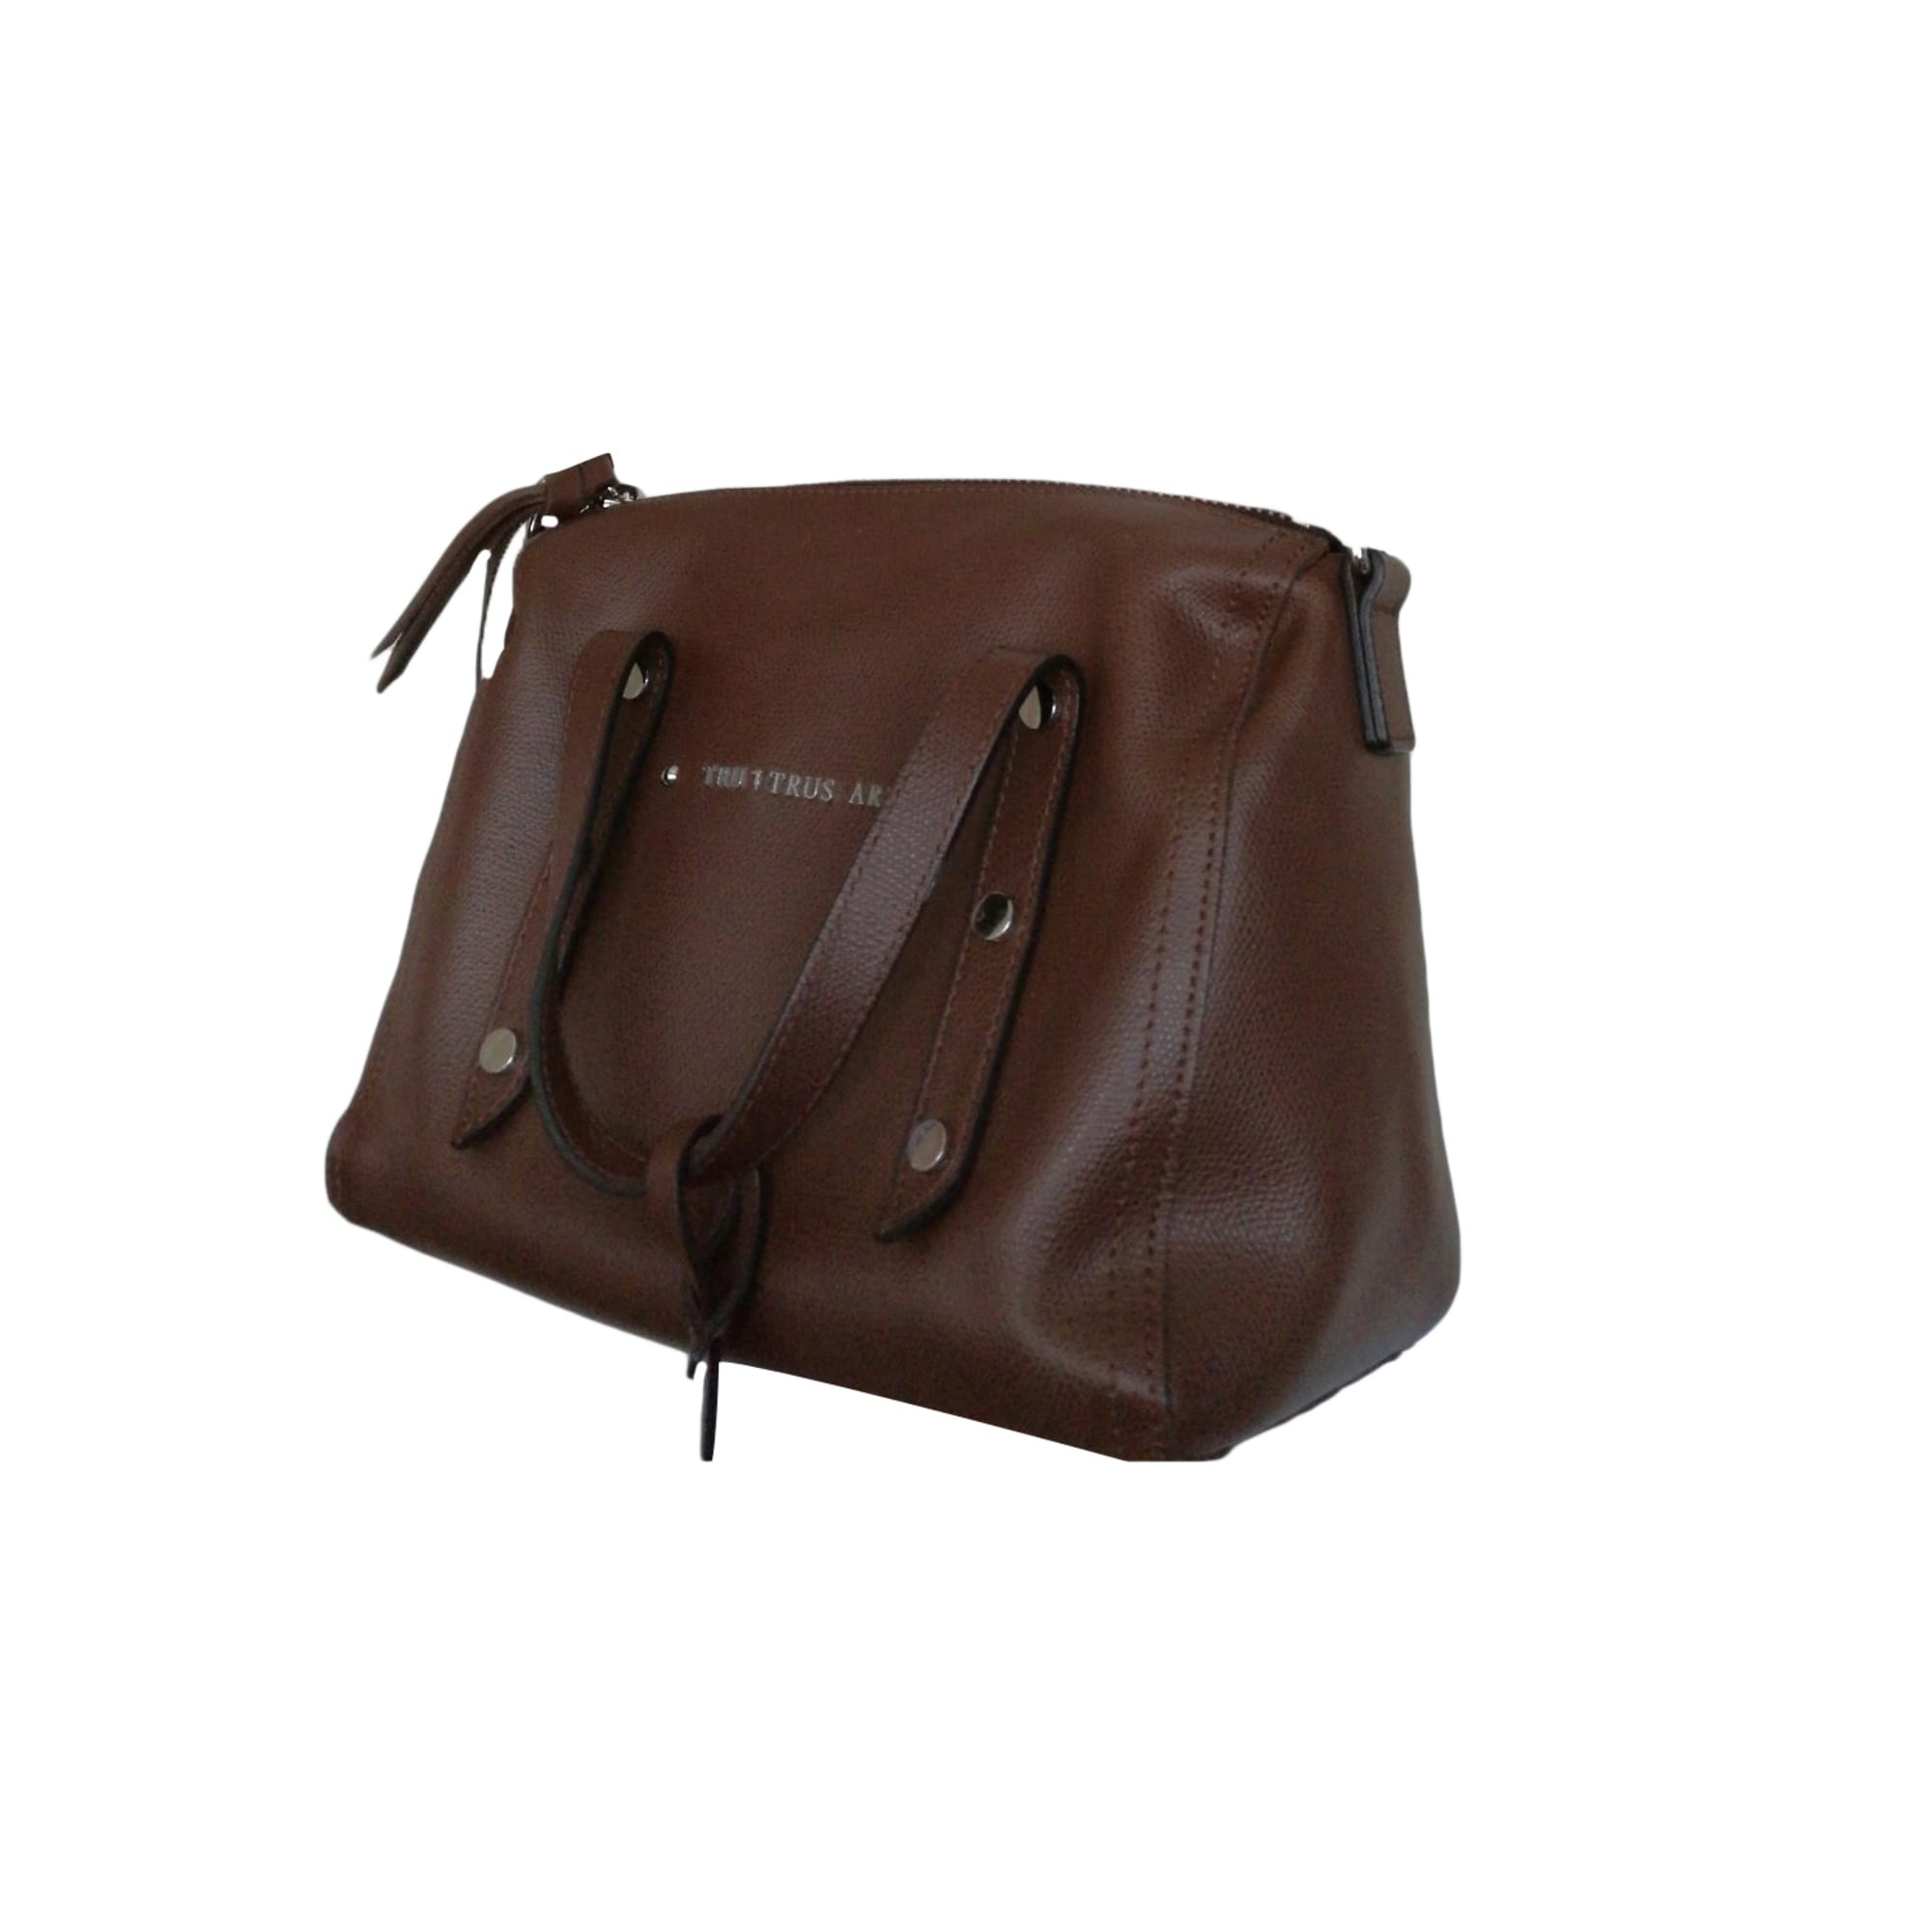 Bag Shoulder Bag Shoulder Leather Bag Leather Tru Shoulder Trussardi Trussardi Tru Tru Leather vz0FqwIa